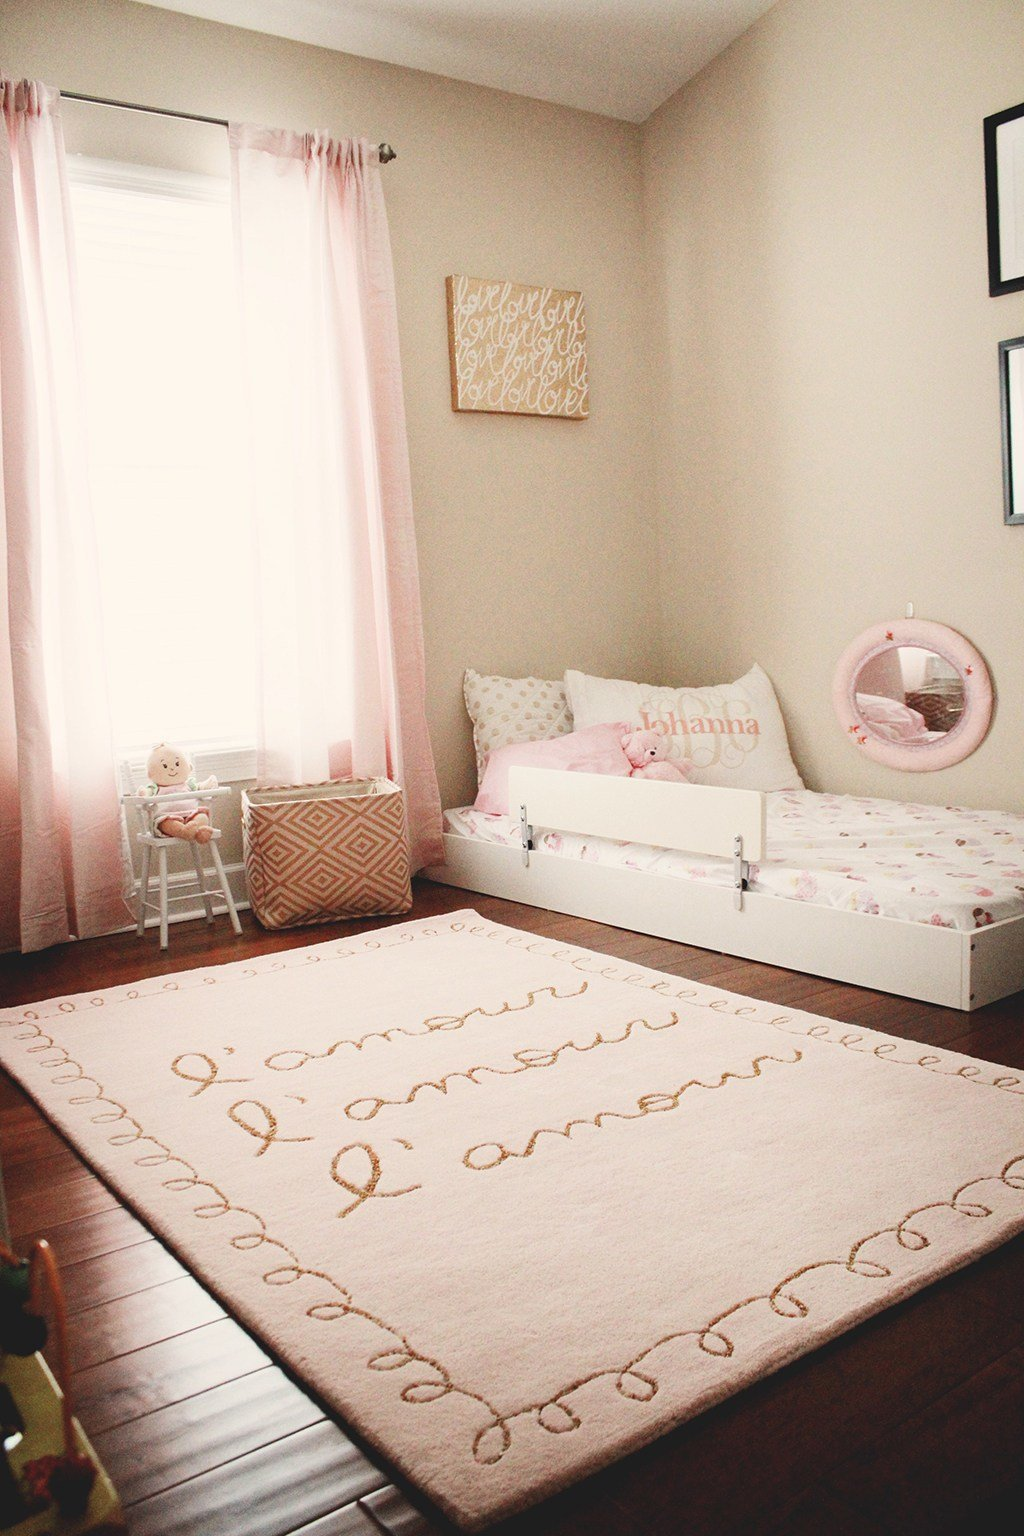 Best Tips For Creating A Montessori Inspired Bedroom – Decordove With Pictures